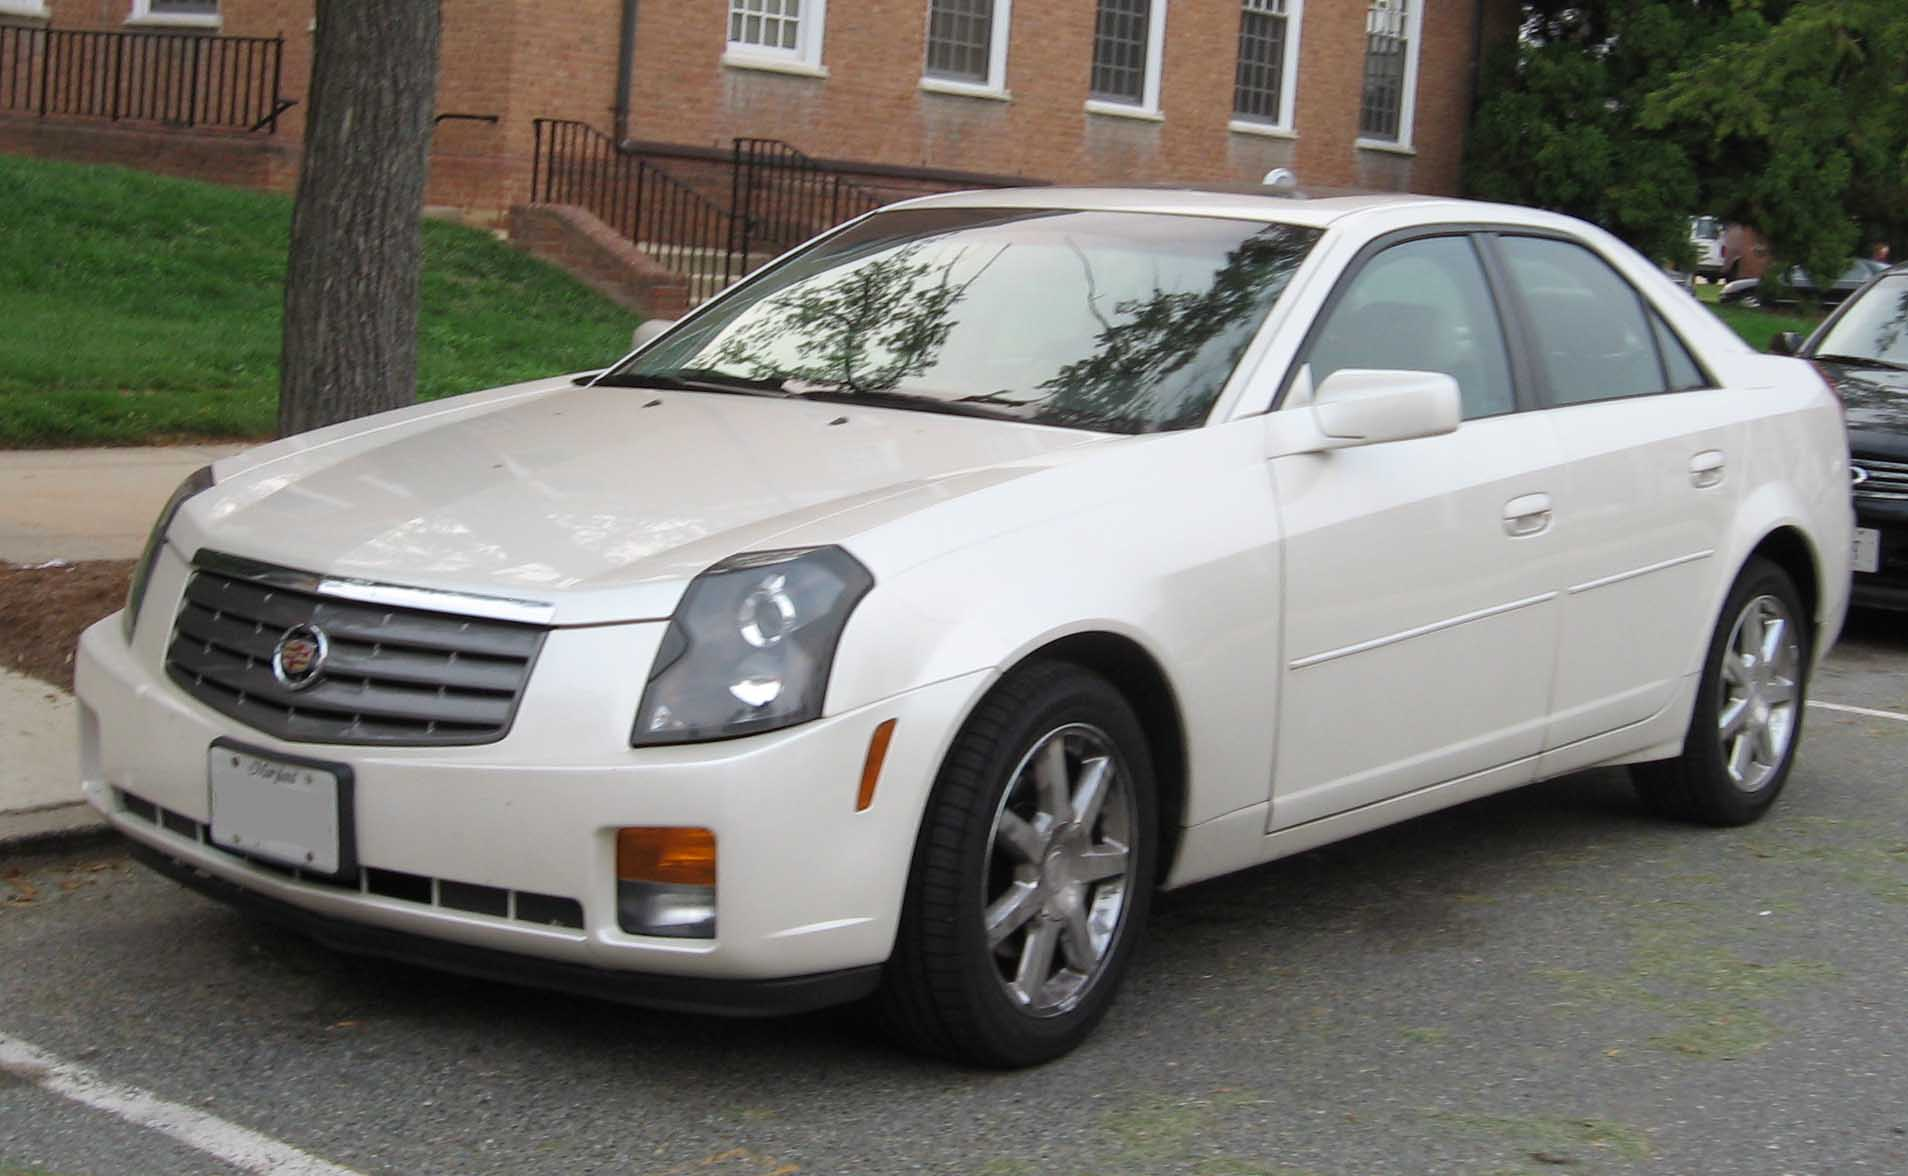 Pictures of cadillac cts #2